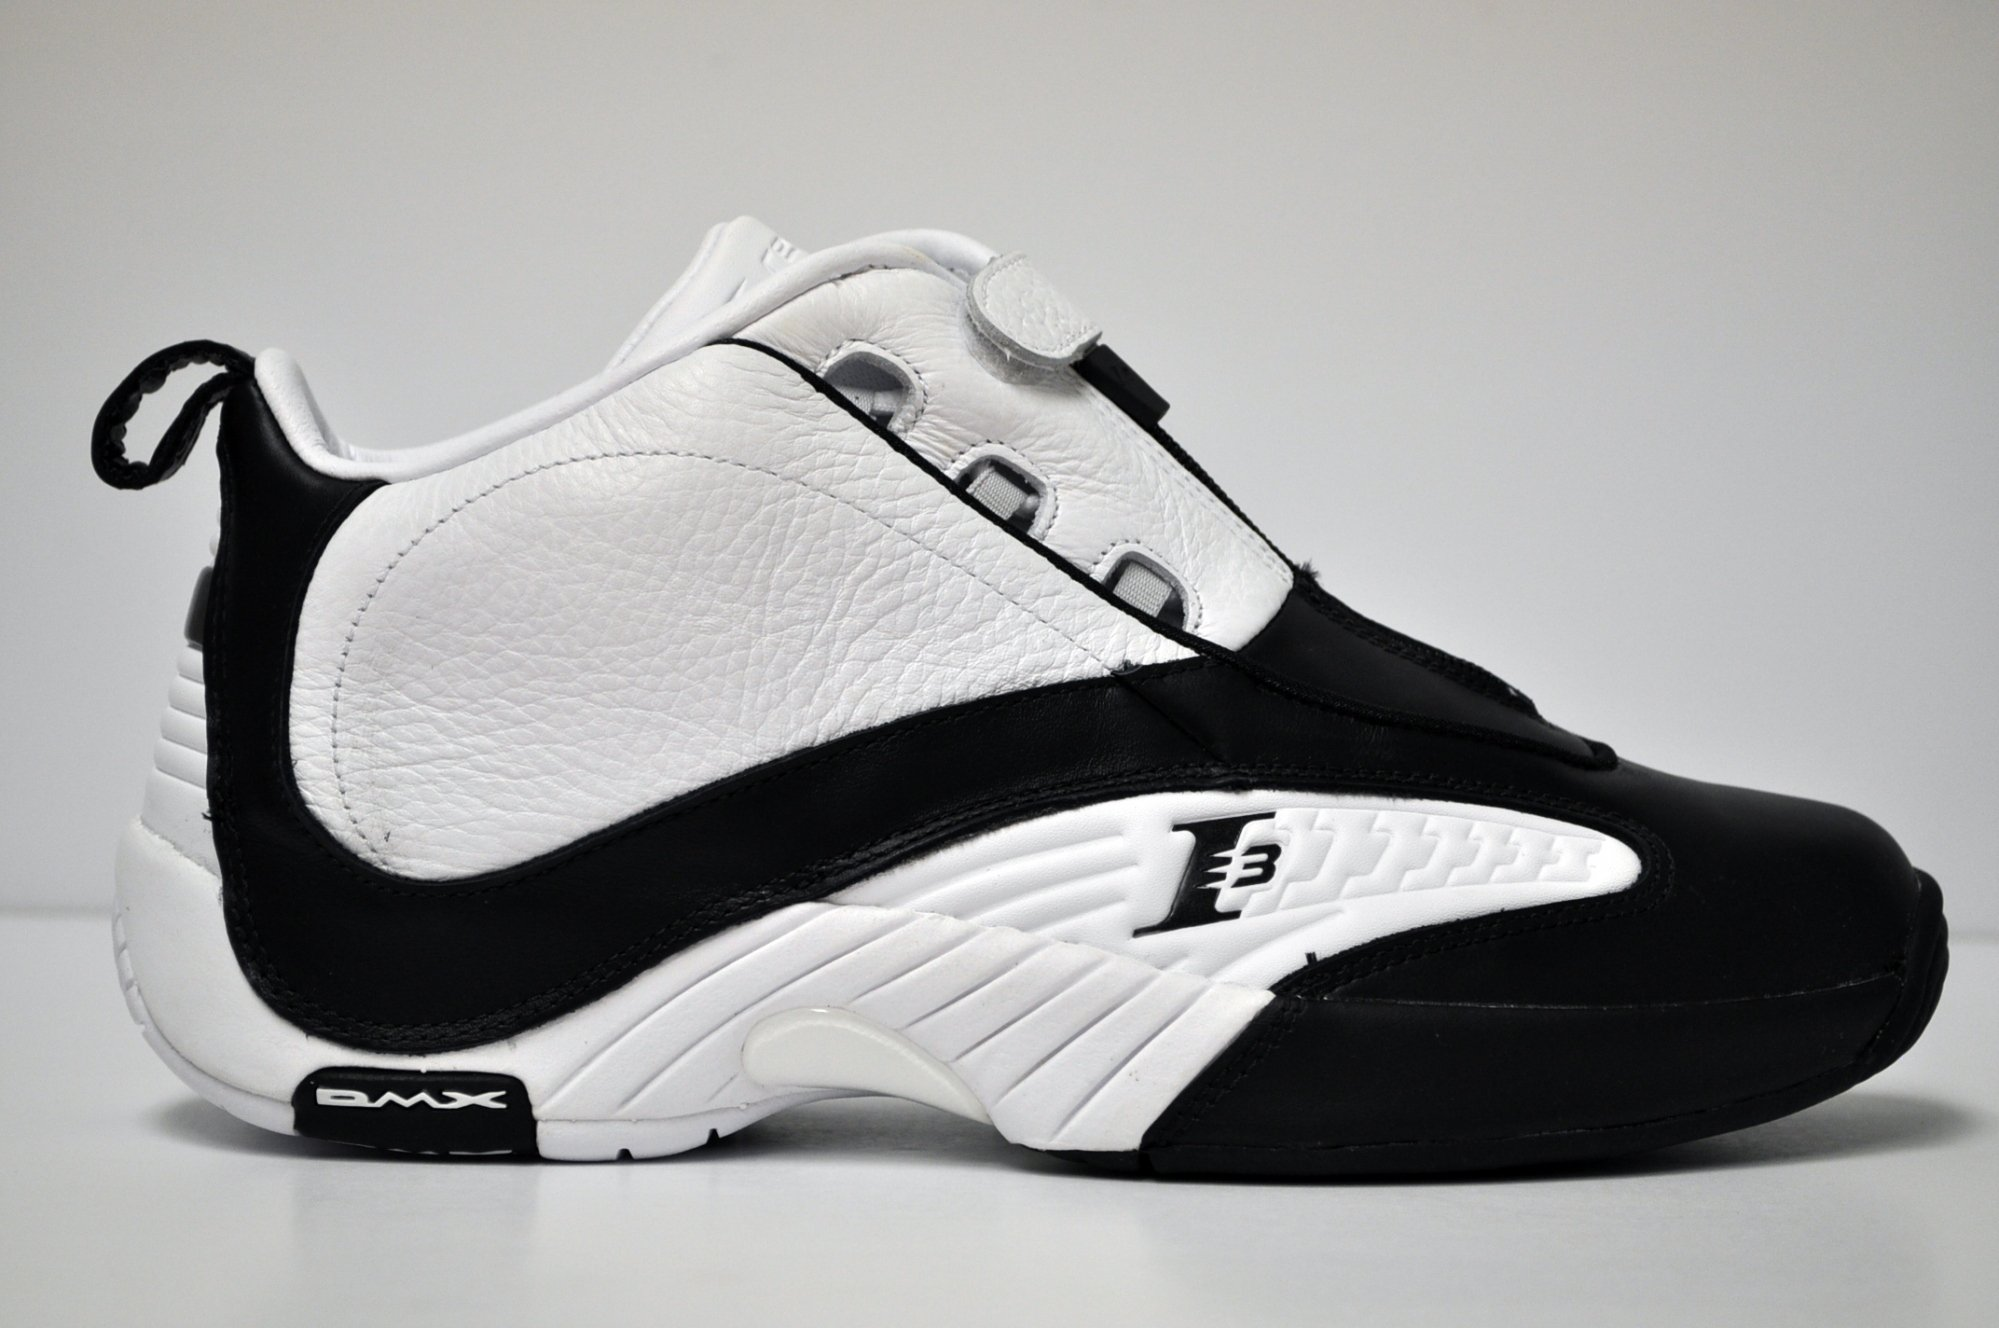 f00cb8c5d938 ... Reebok Answer IV WhiteBlack at The Vault ...